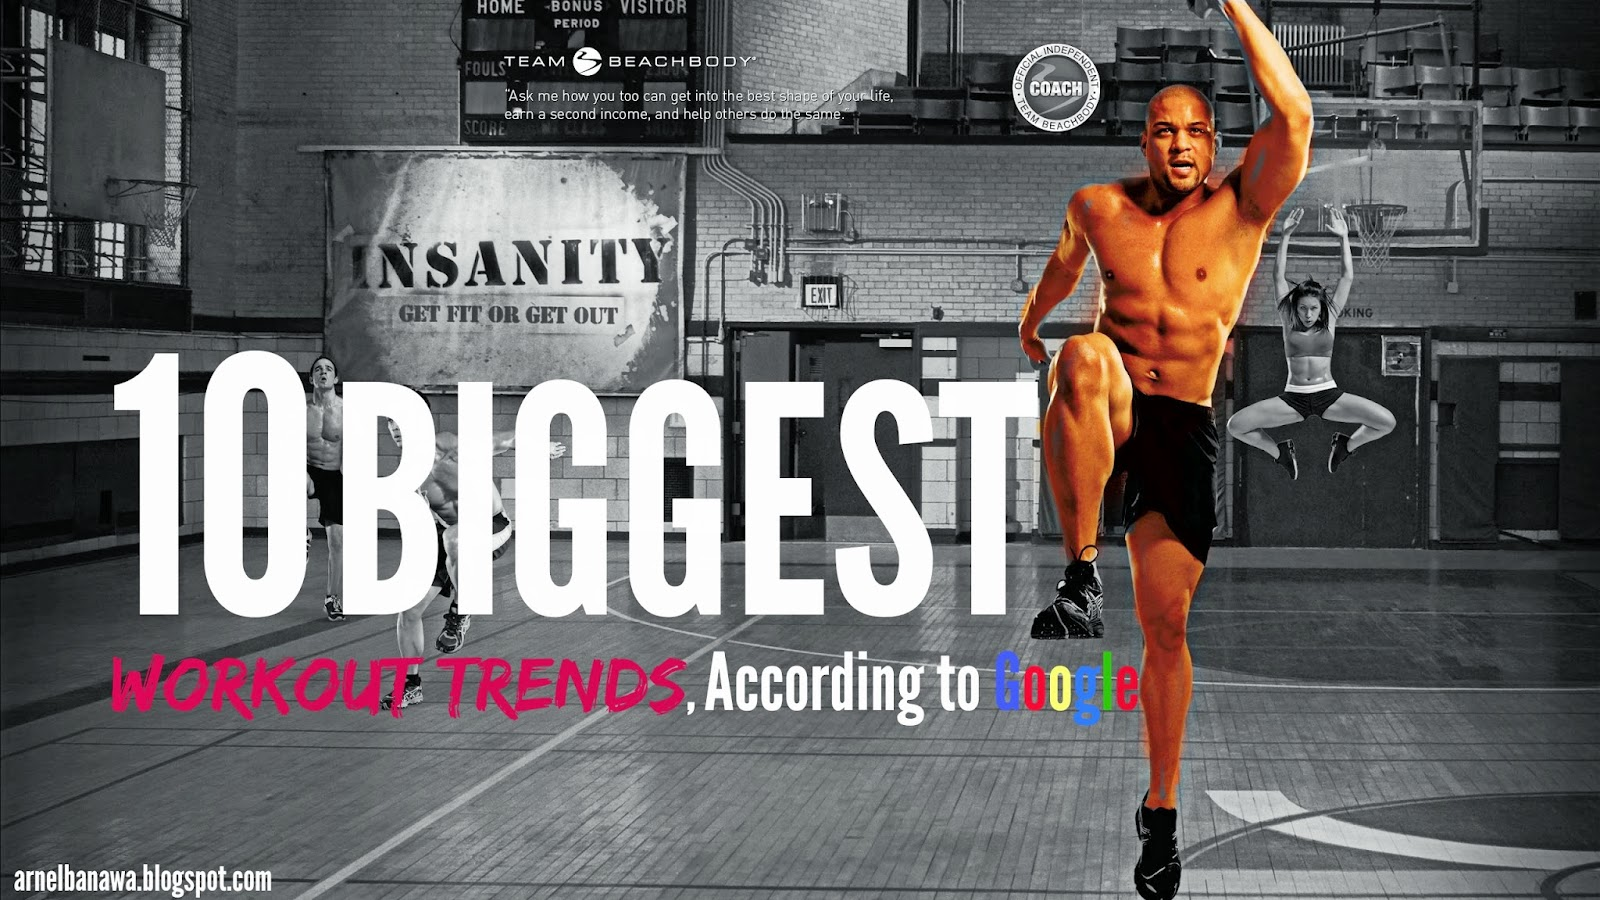 10 Biggest Workout Trends According to Google - 2014